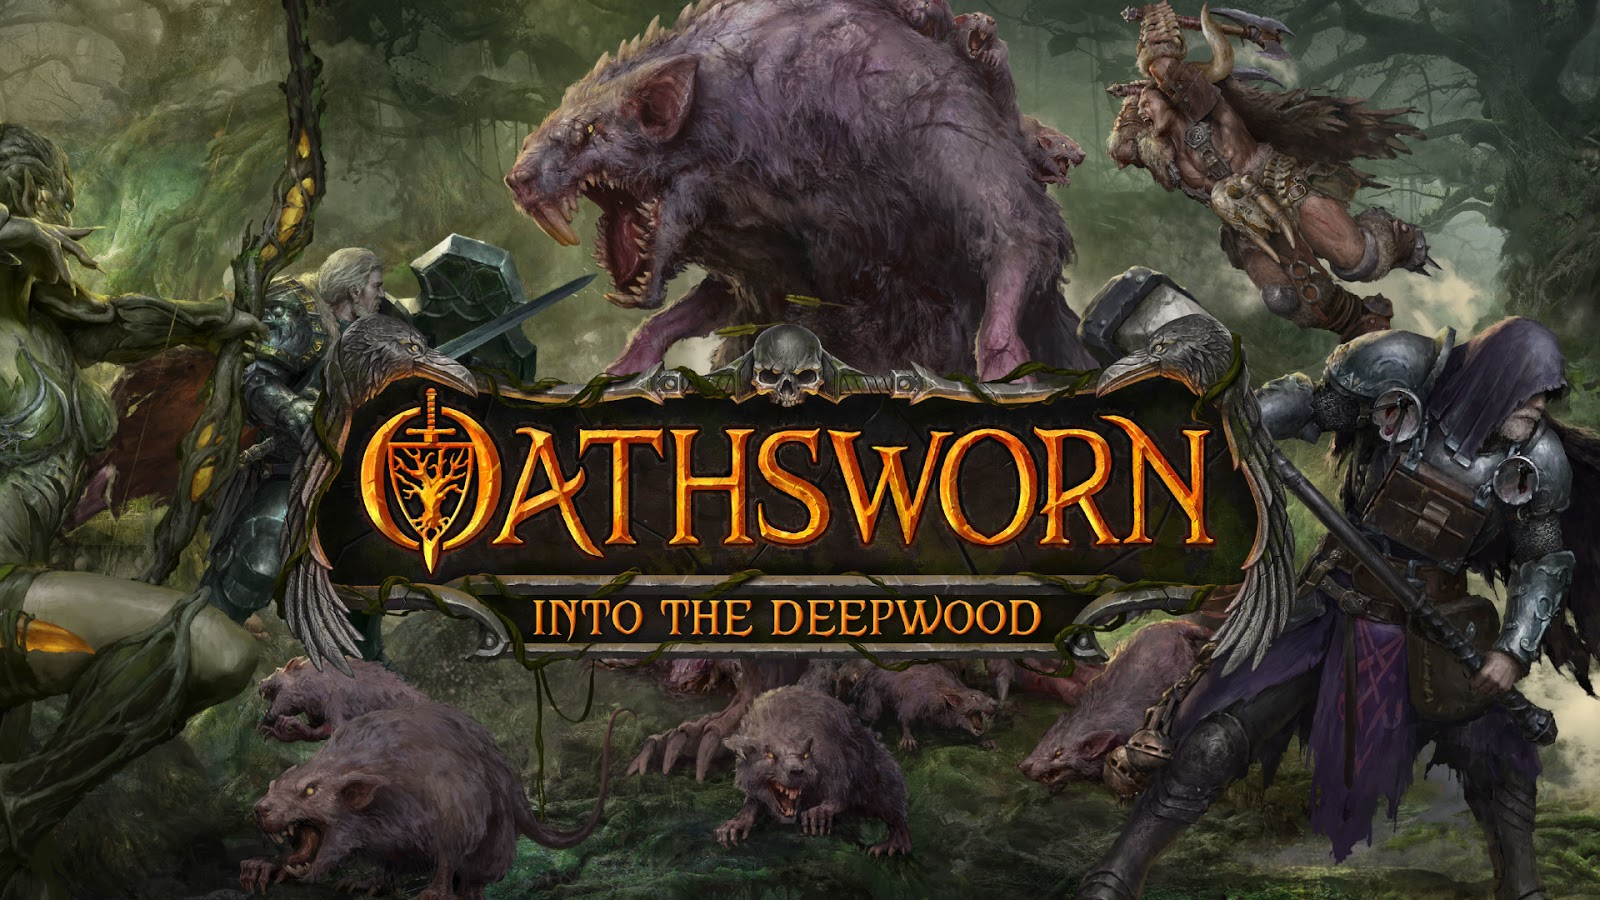 Kickstarter Highlights - Oathsworn Into Deepwood